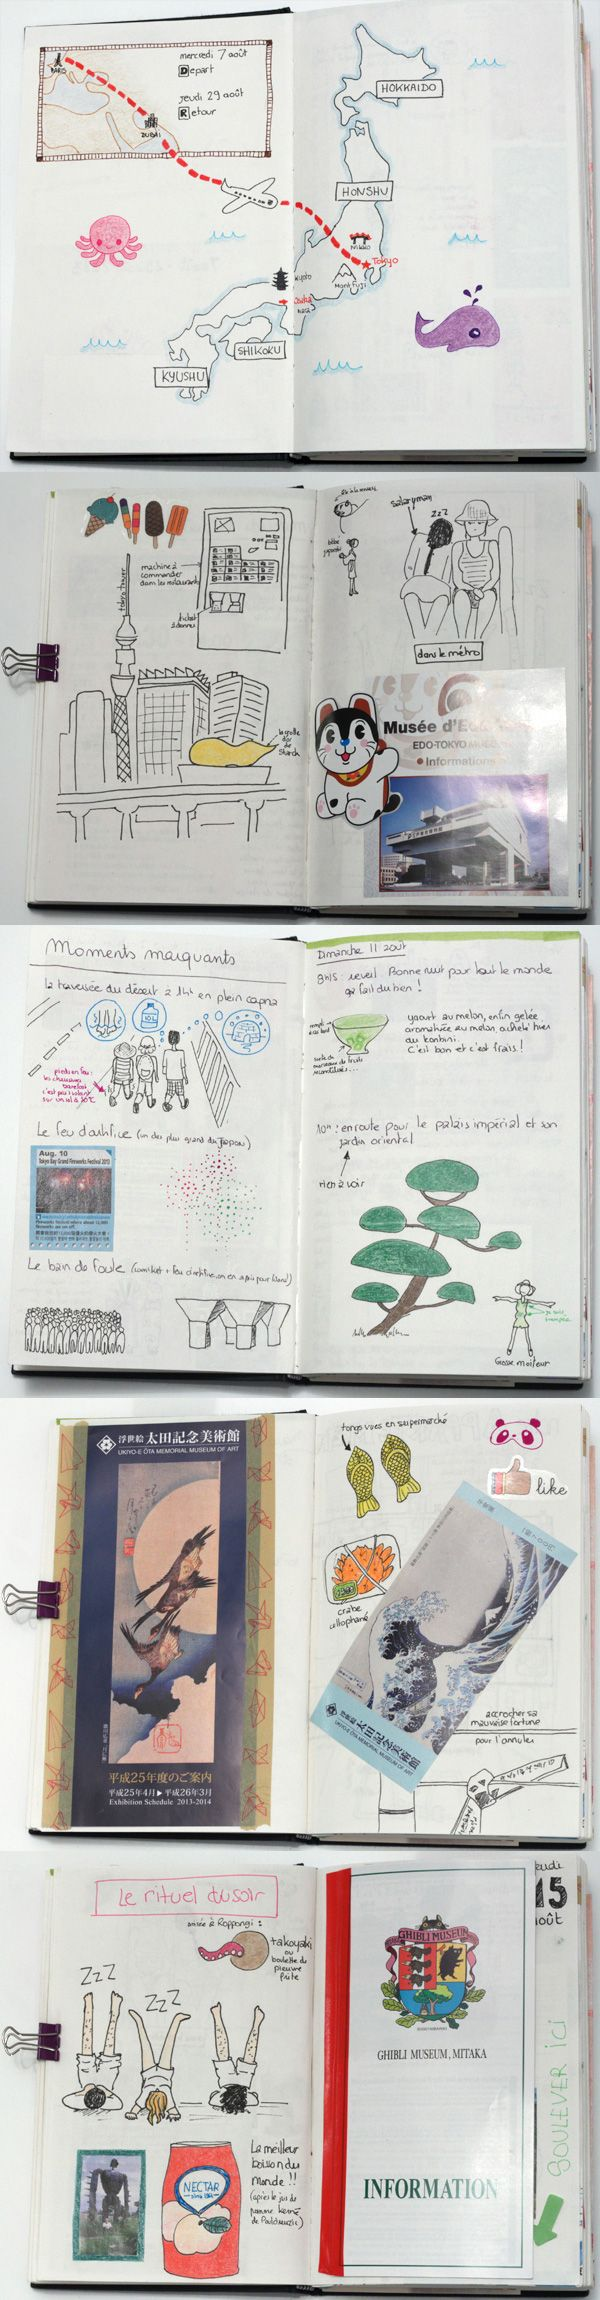 best ideas images on pinterest bullet journal gift ideas and